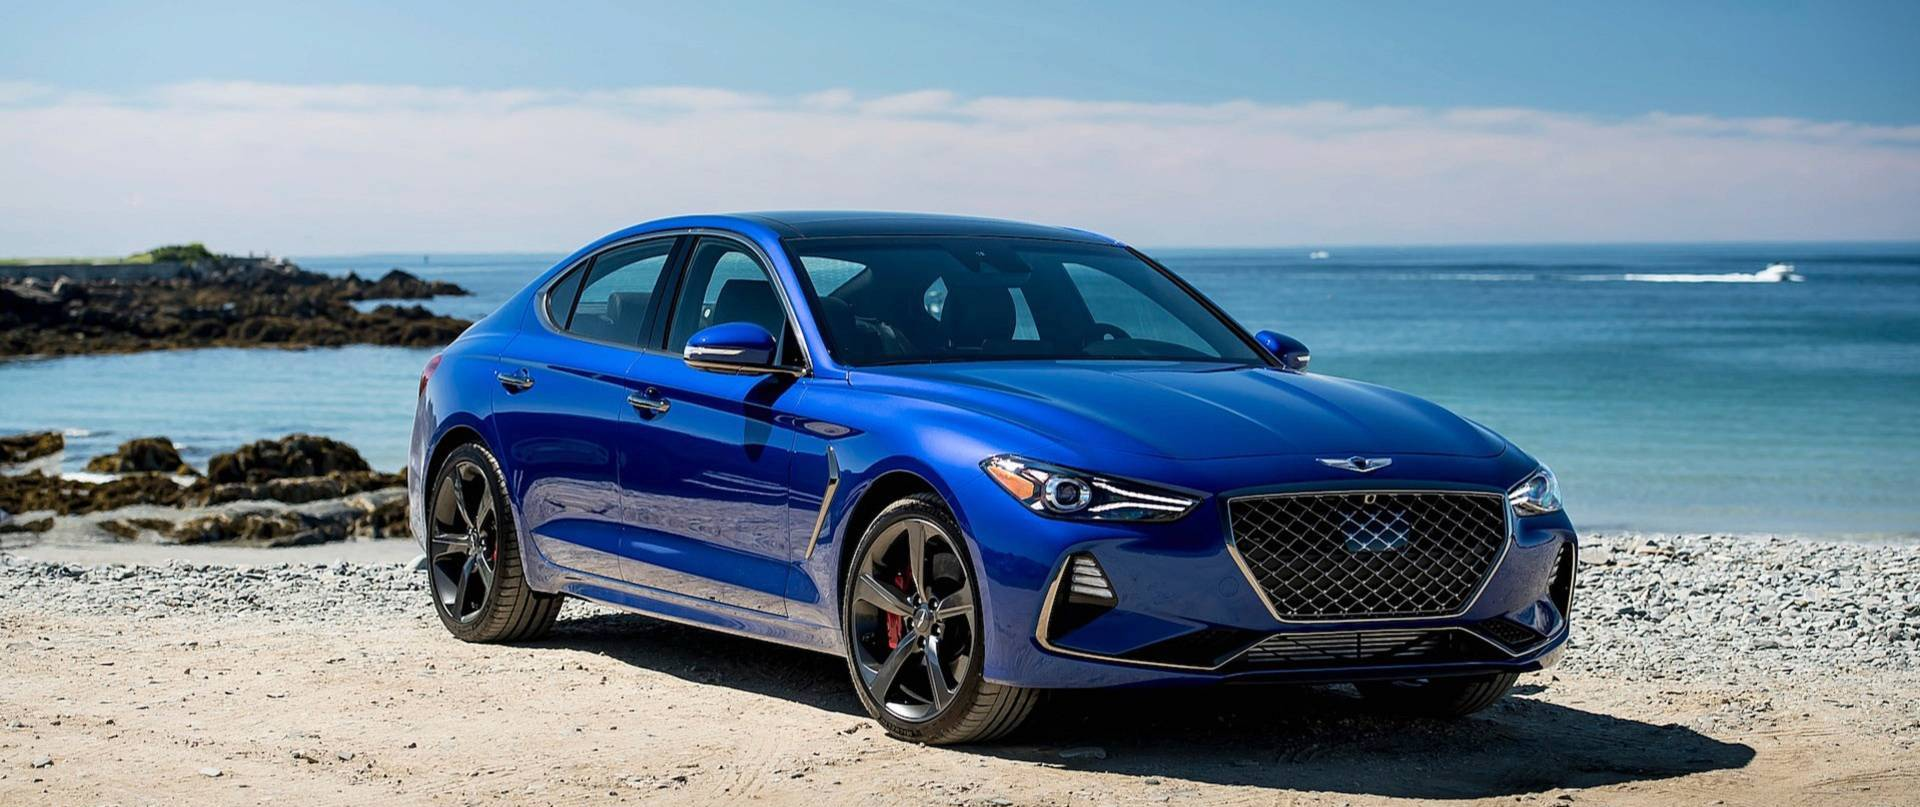 Genesis Confirms G70-Based Compact Crossover For 2021